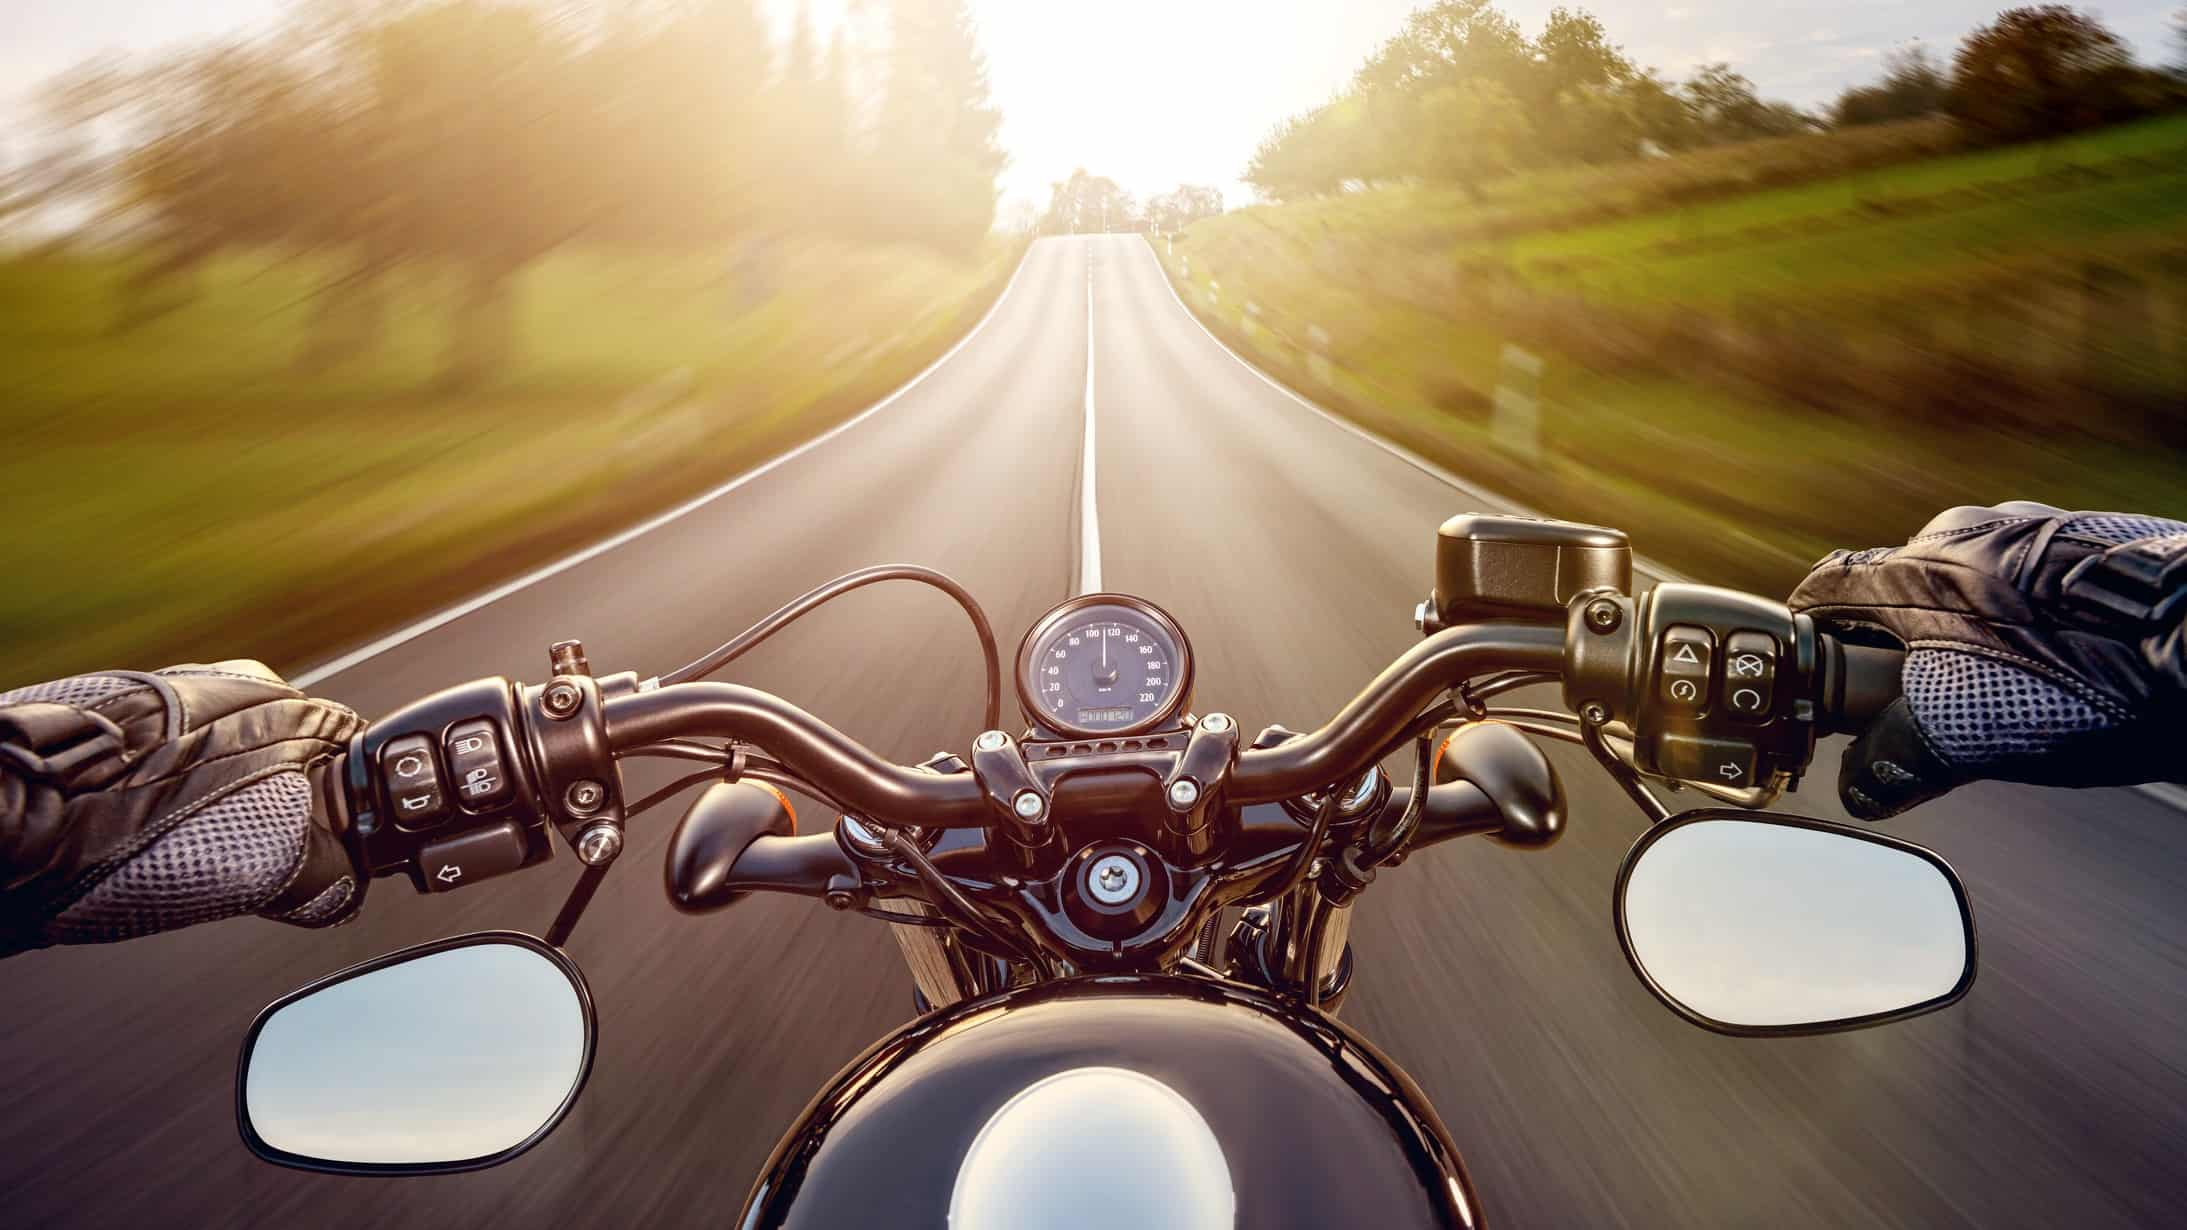 Photo from motorcycle rider's perspective looking at handlebars and road with green fields either side